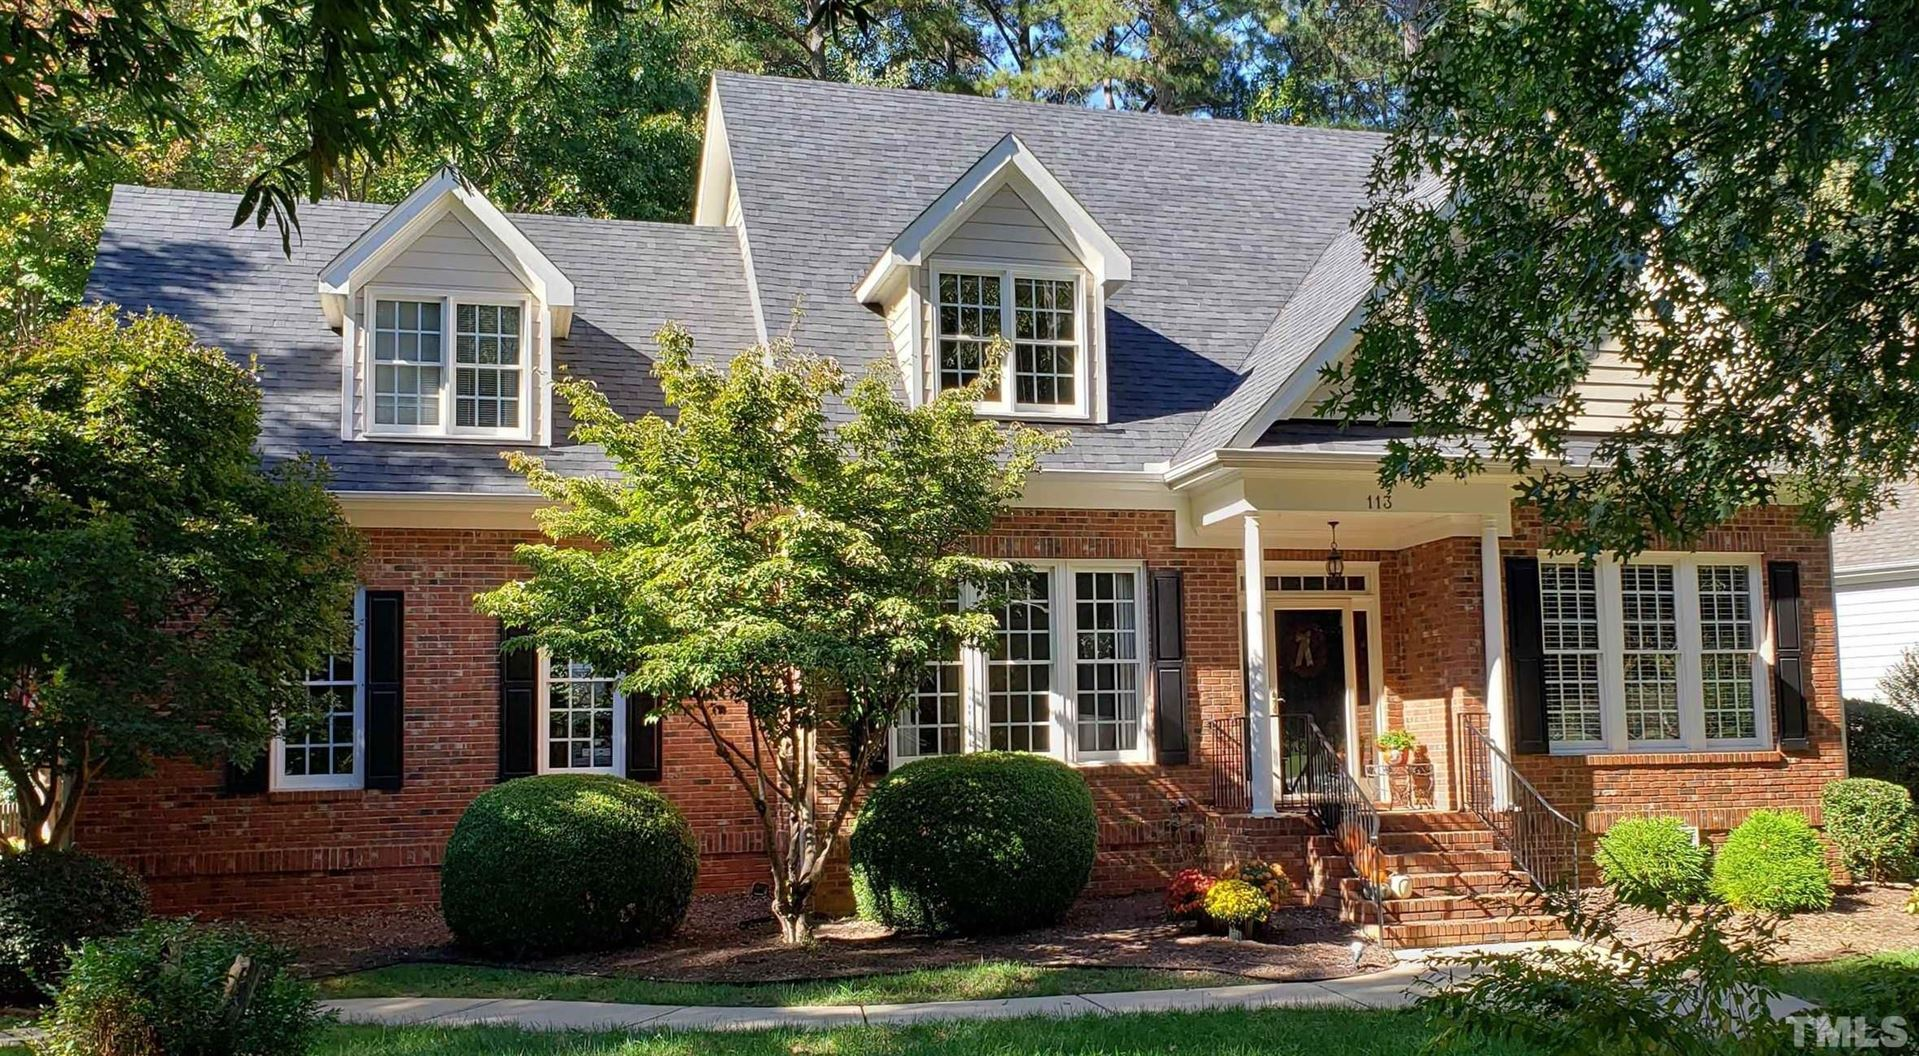 Photo of 113 Holly Park Drive, Holly Springs, NC 27540 (MLS # 2415168)